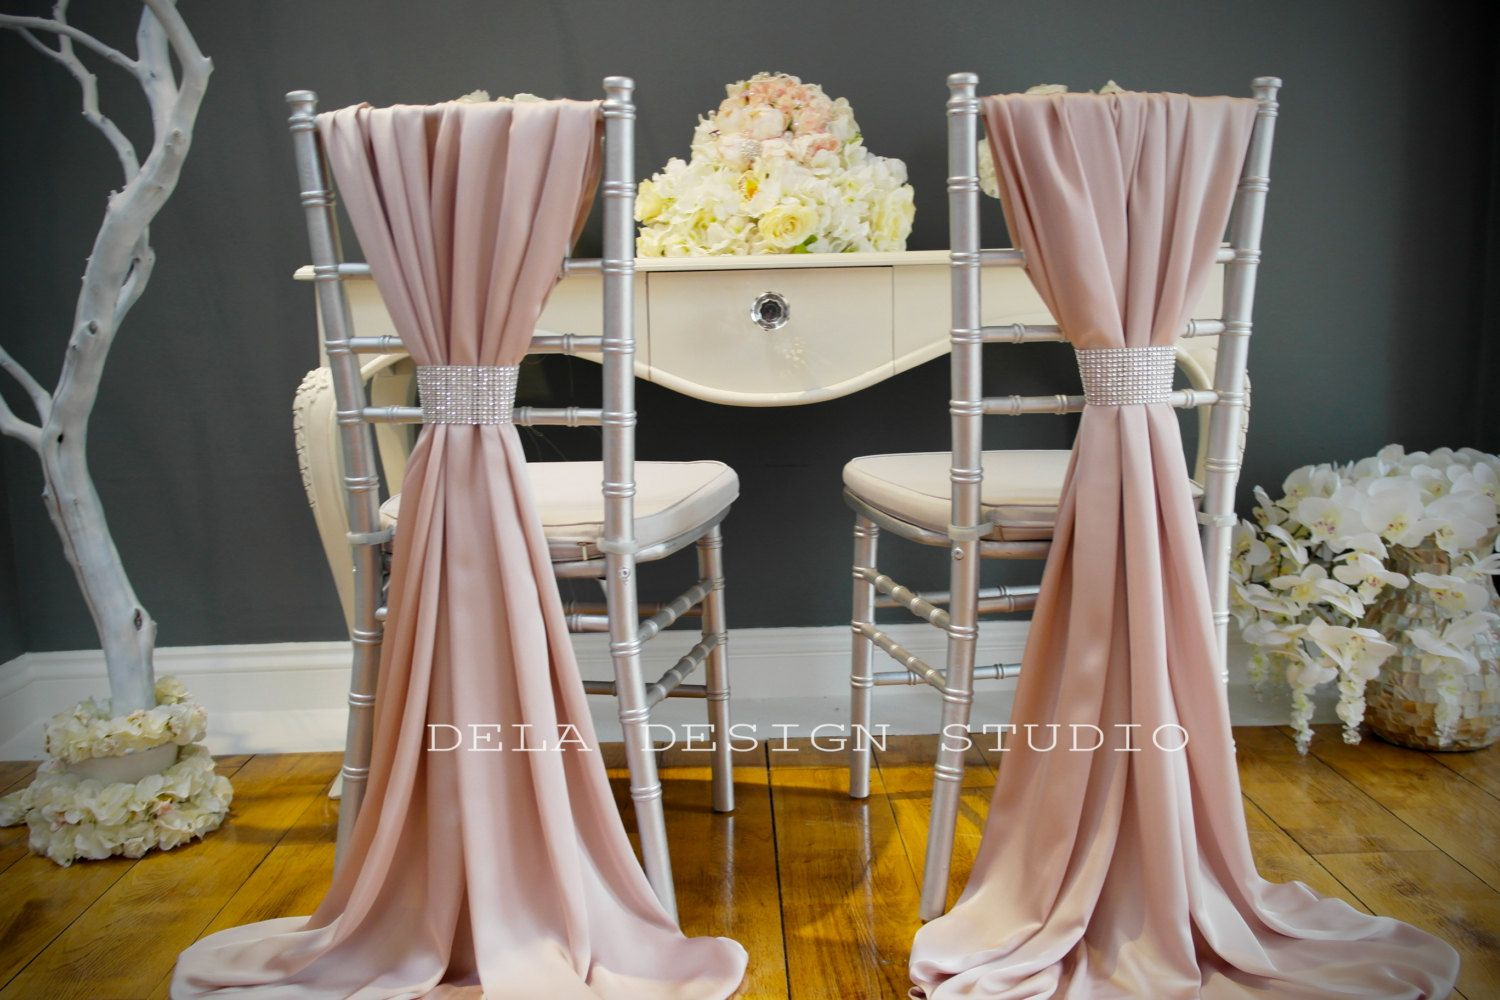 chair covers with pink bows hire edinburgh silky cover sash blush wedding by